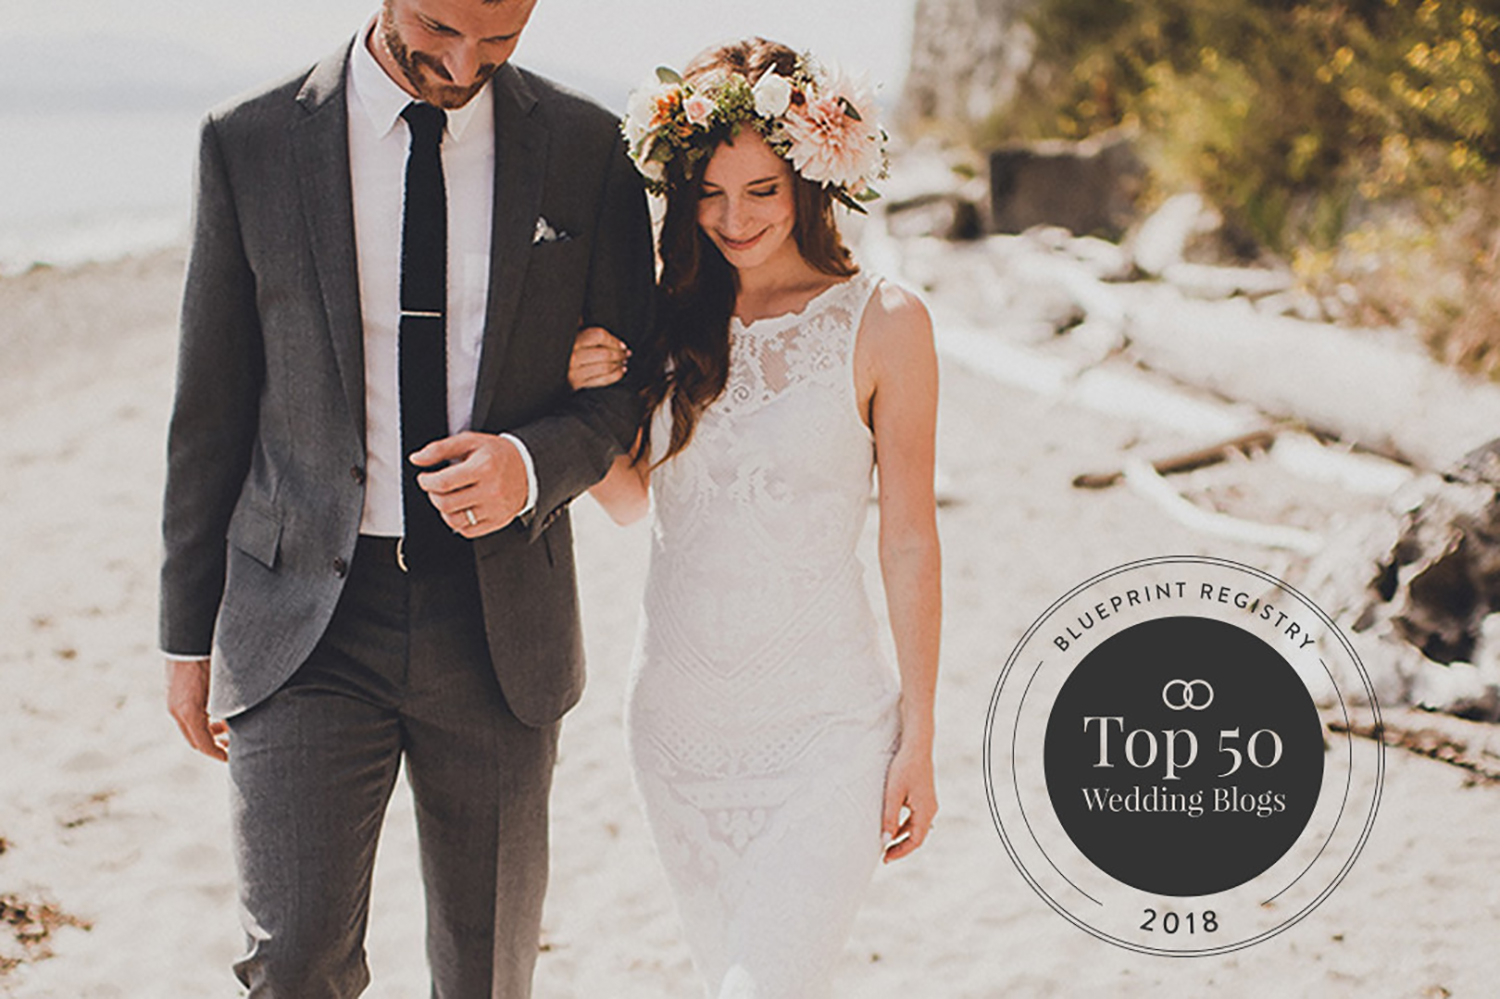 50 Wedding Blogs You Need to Follow in 2018—Blueprint Registry Guides